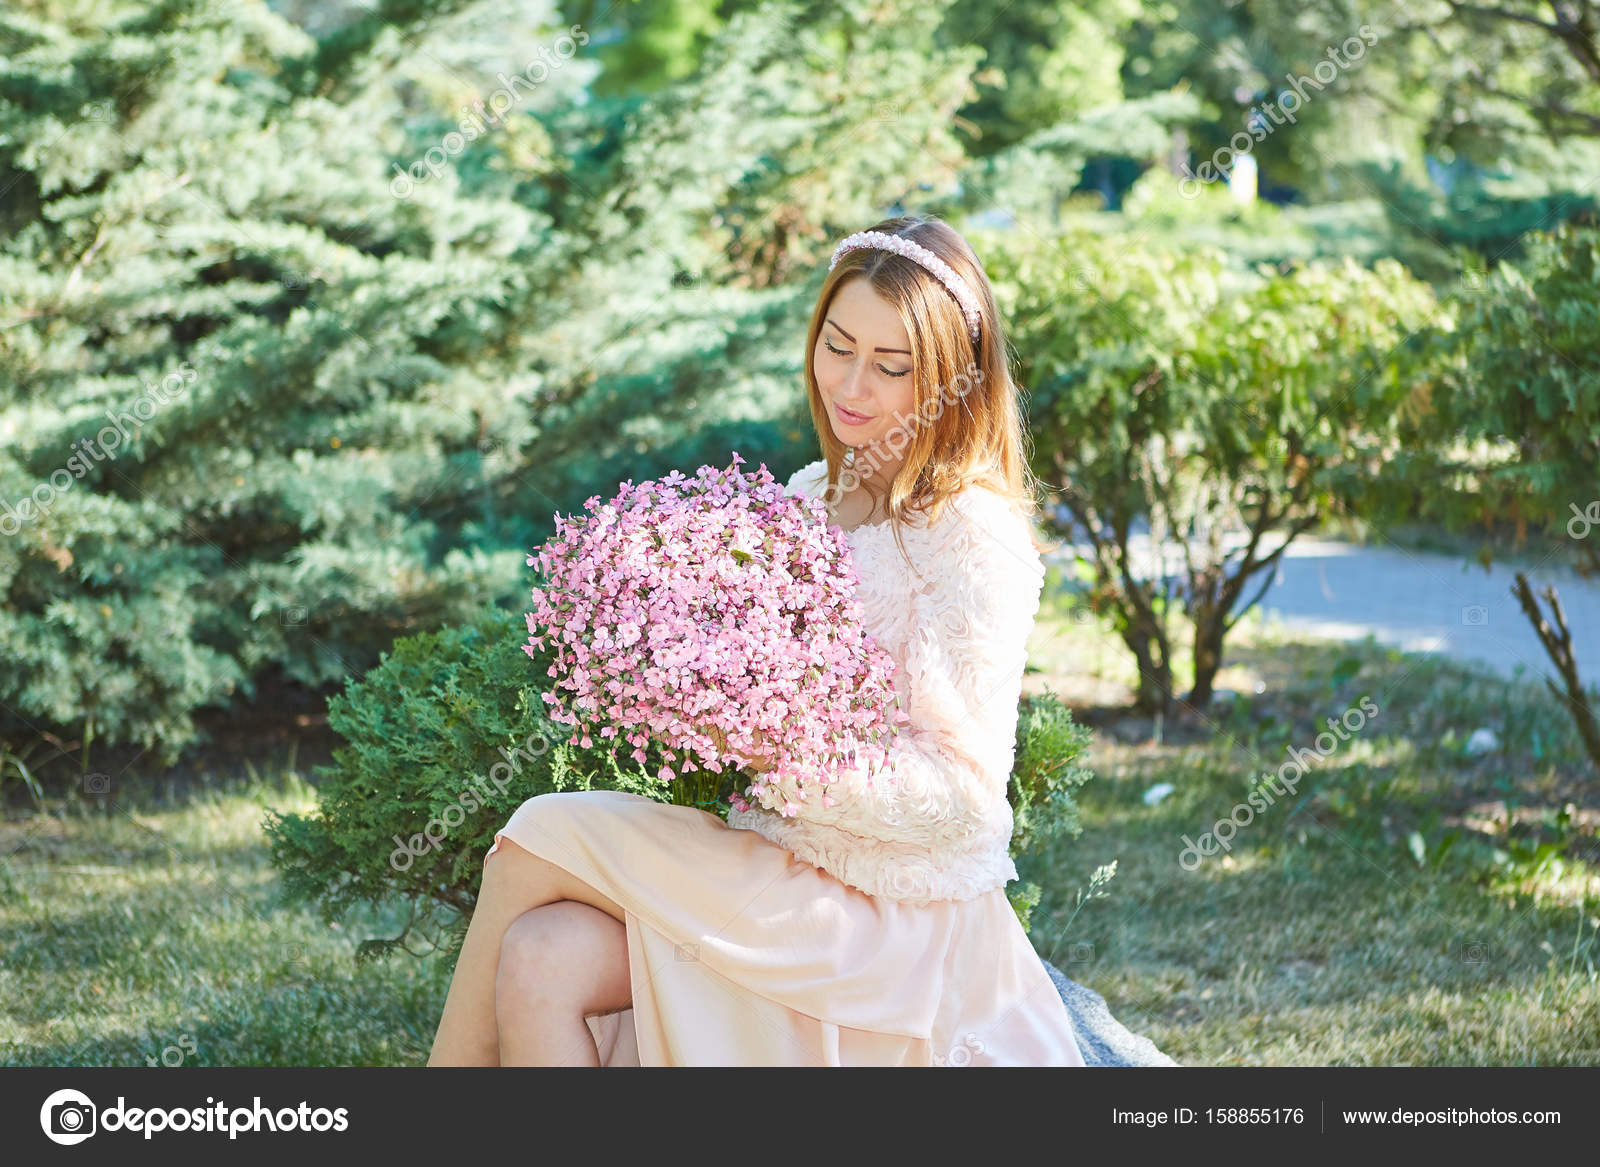 Beautiful woman with flowers stock photo malsveta 158855176 beautiful girl with bouquet of flowers in the garden pleasure sunlight and warmth beauty model woman face photo by malsveta izmirmasajfo Image collections